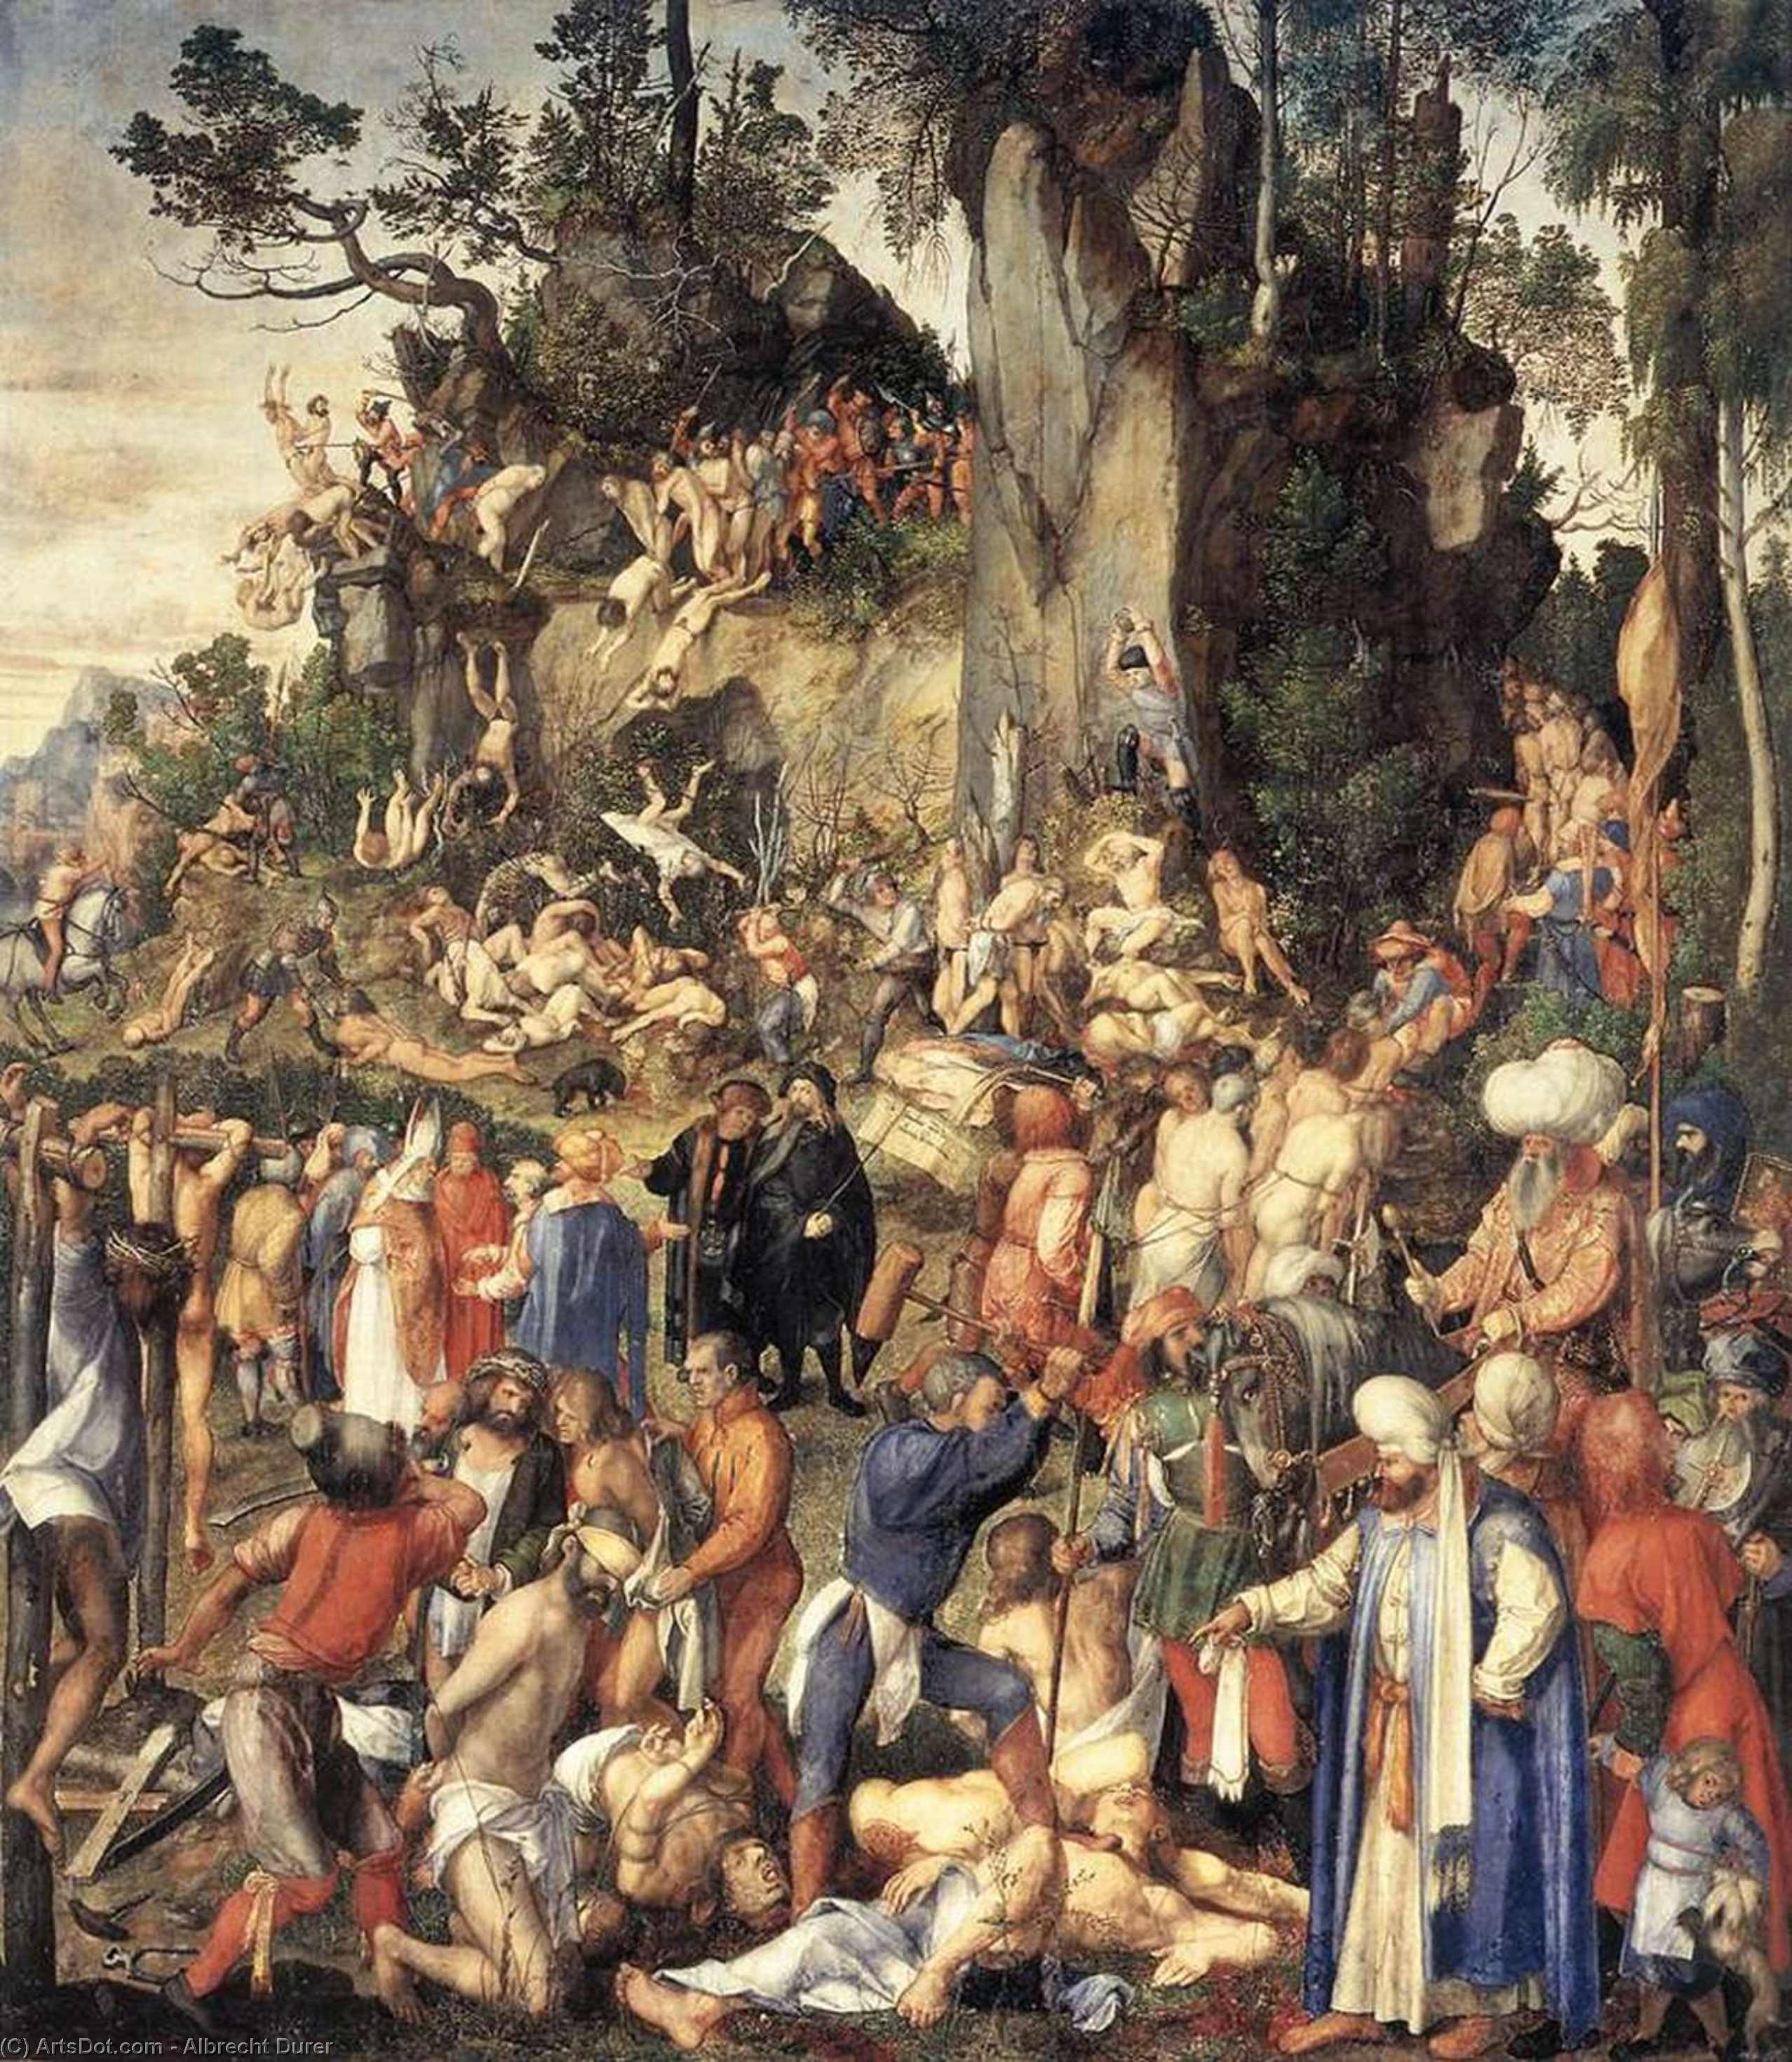 Wikioo.org - The Encyclopedia of Fine Arts - Painting, Artwork by Albrecht Durer - The Martyrdom of the Ten Thousand